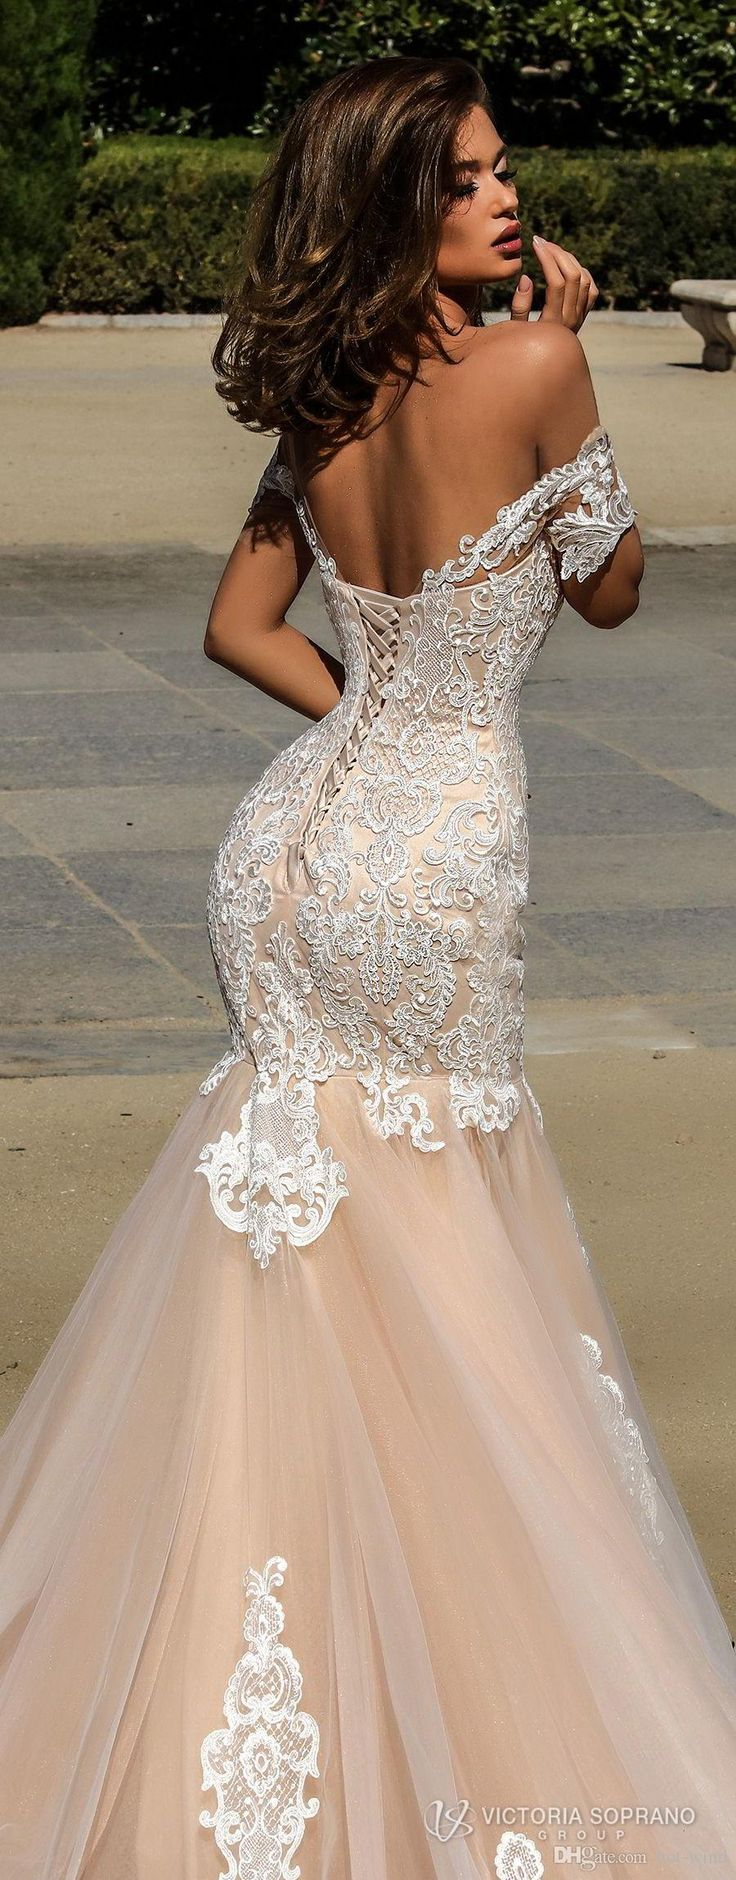 2018 Champagne Mermaid Wedding Dresses Country Style New Arrival Short Sleeves Lace Appliques Tulle Bridal Gowns With Corset Back Weddings Dress For Wedding Maternity Wedding Dresses From Hot Wind, $176.94| DHgate.Com